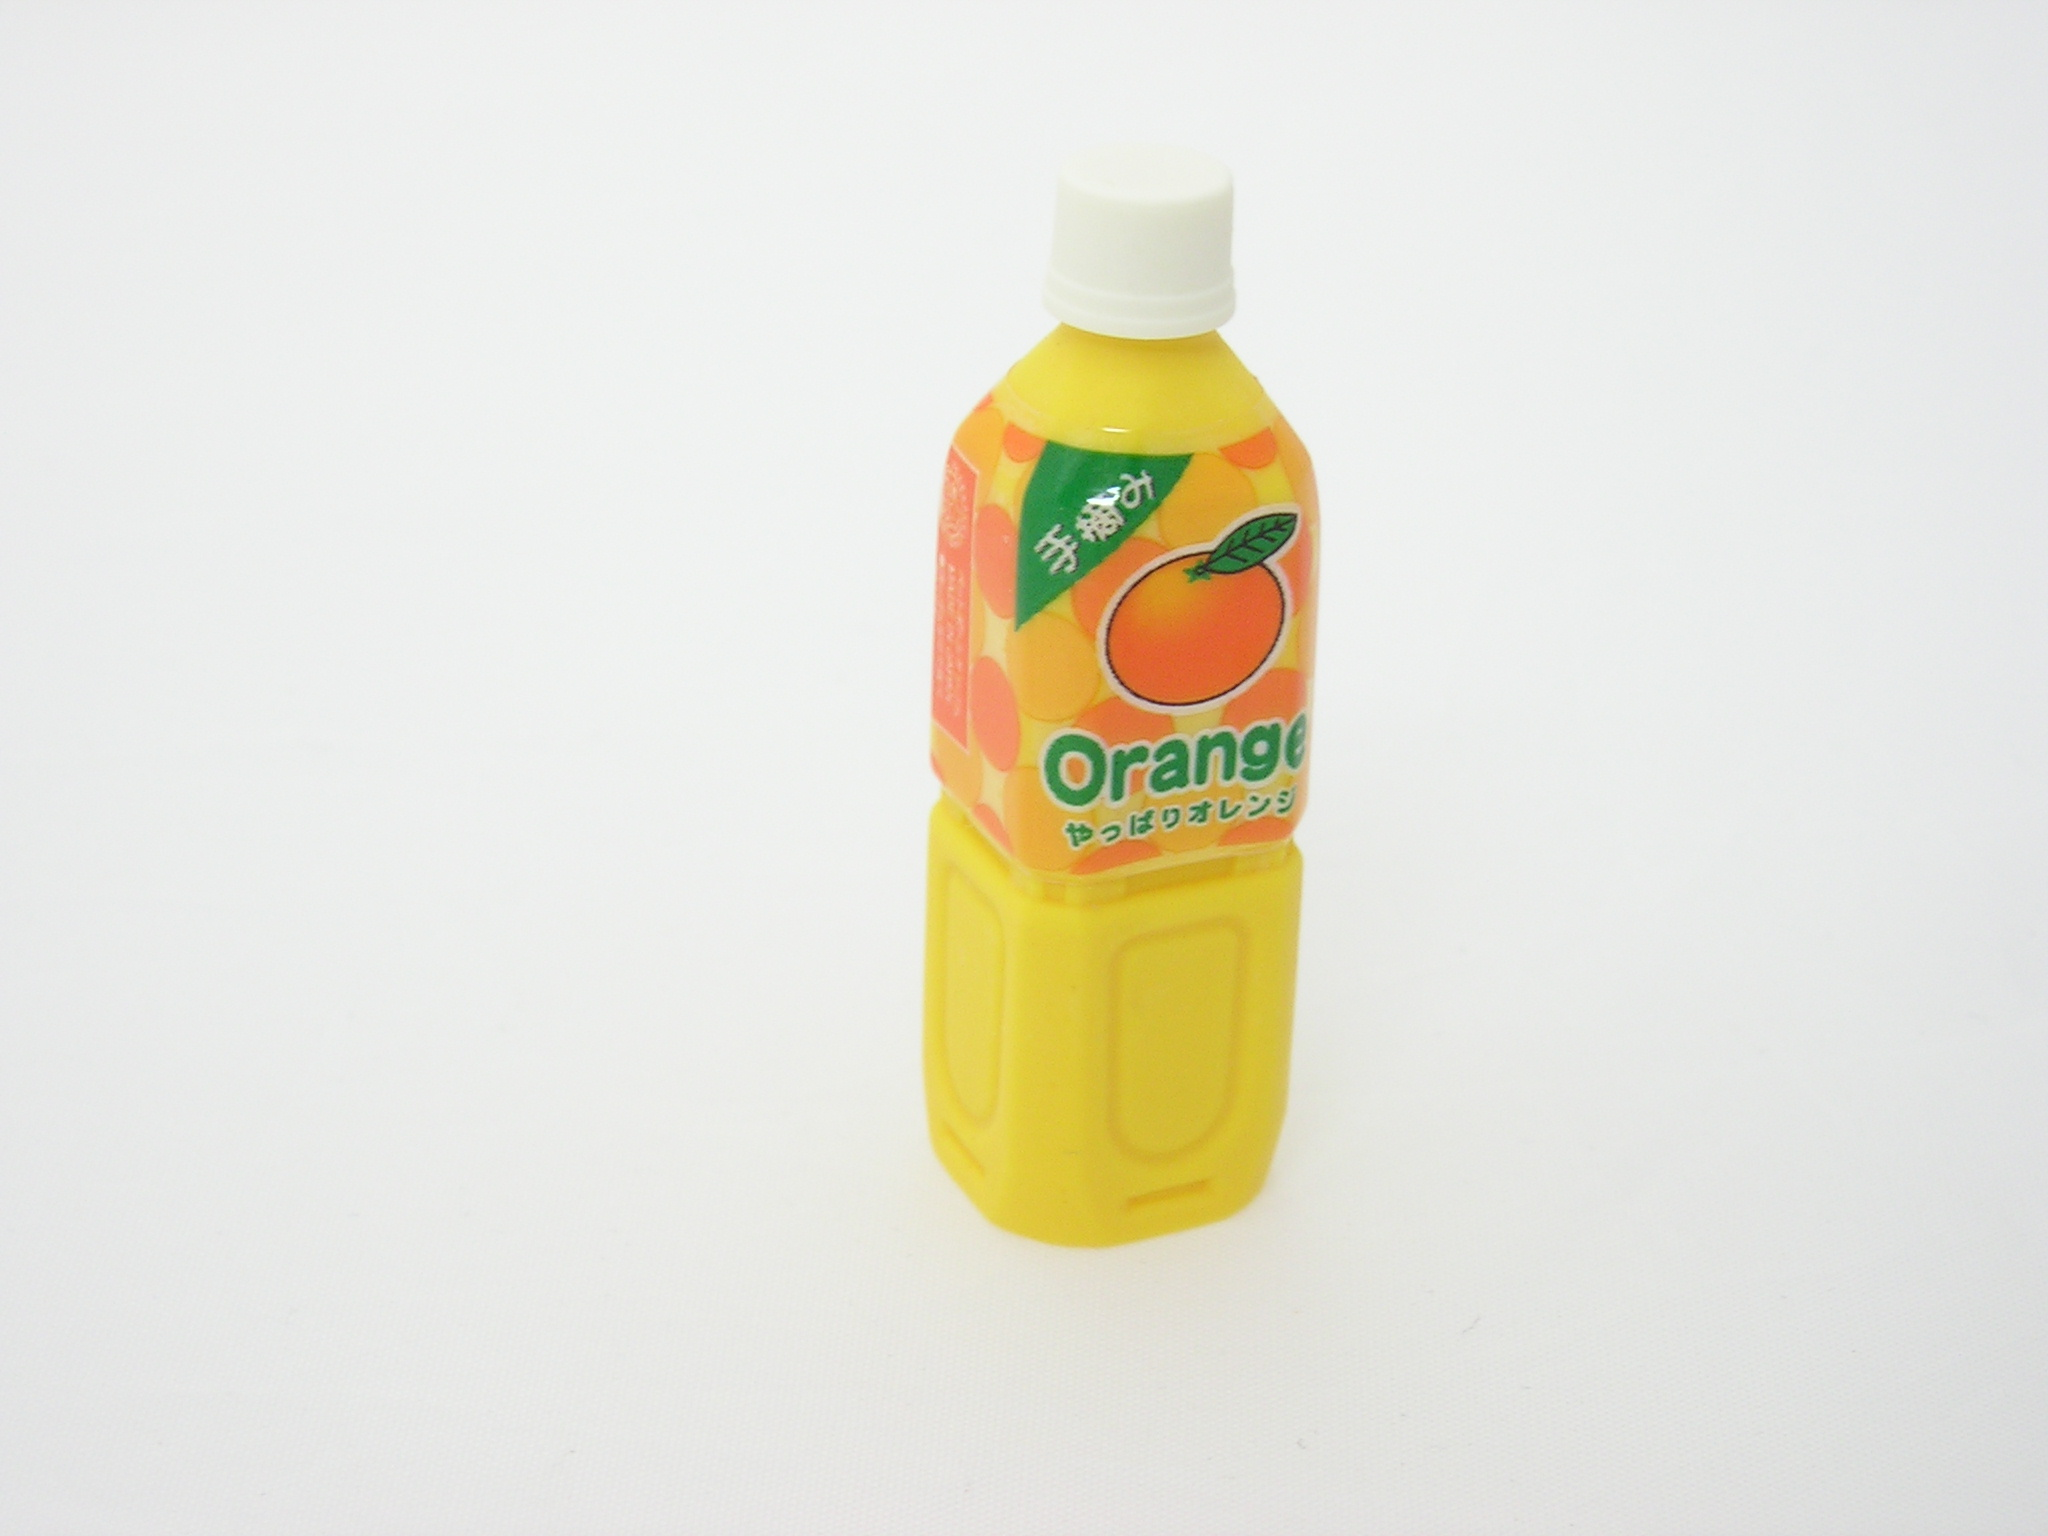 223 Flasche Orange